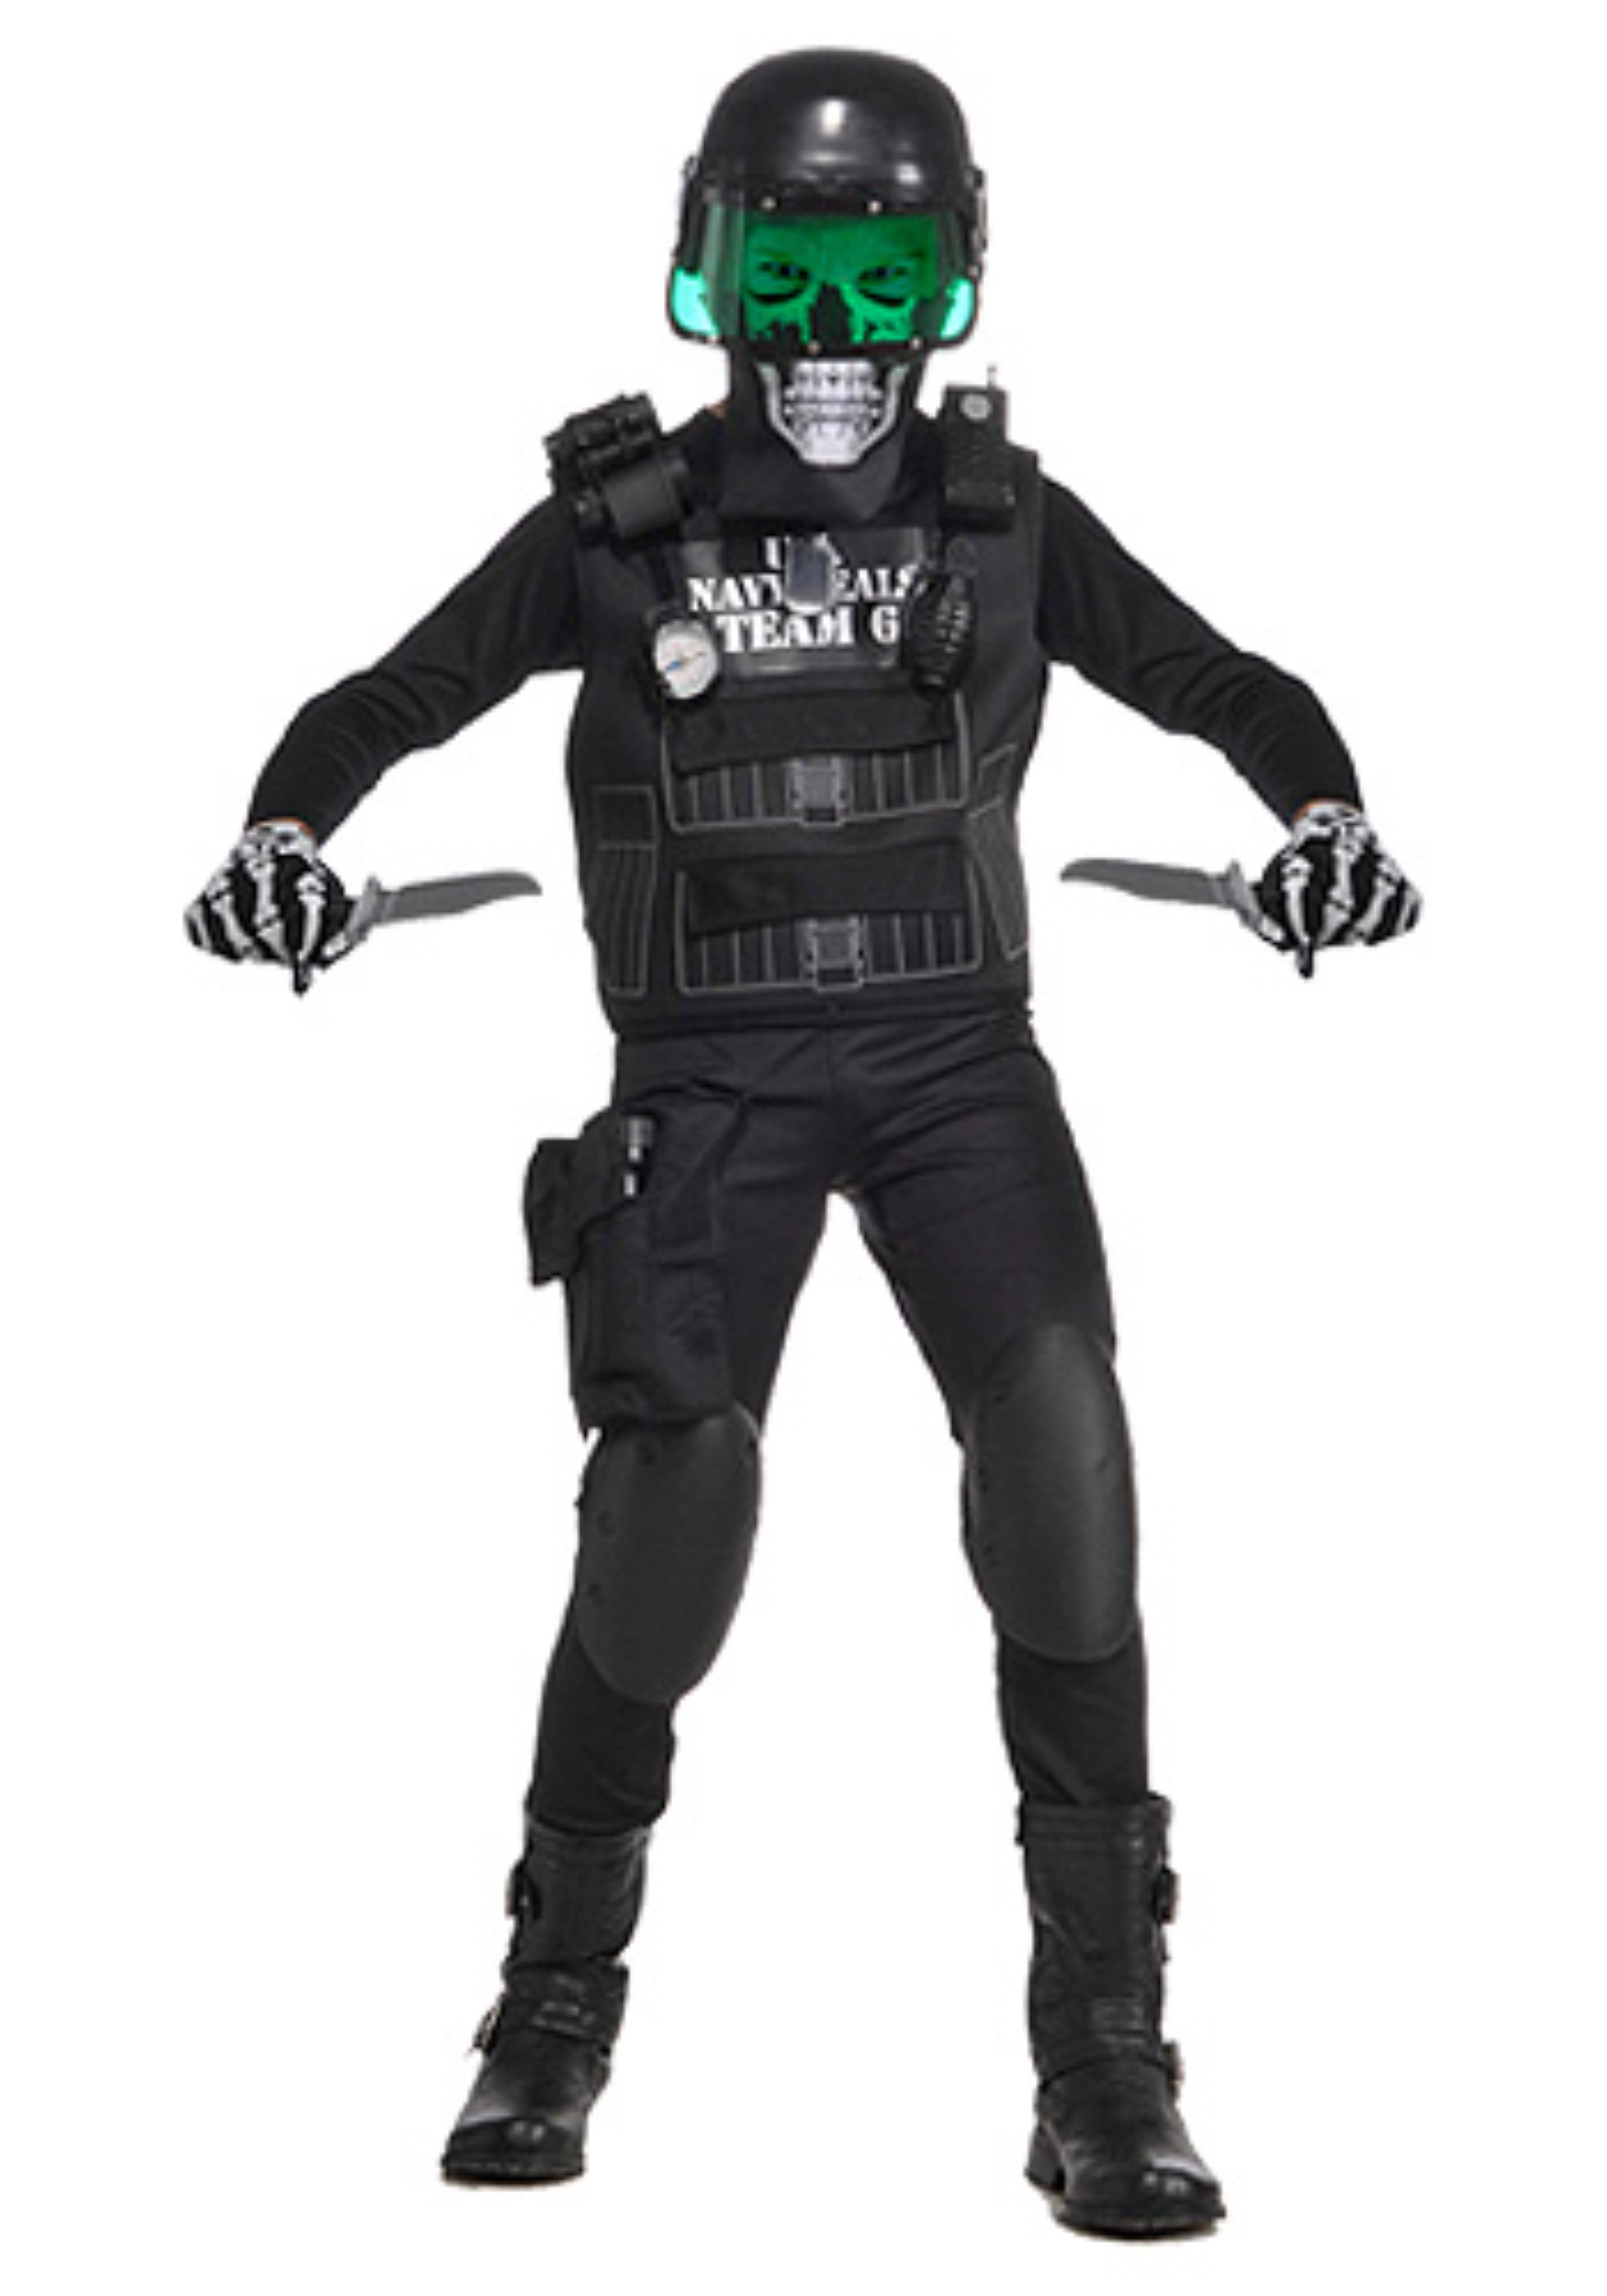 kids zombie navy seal costume - Halloween Army Costume